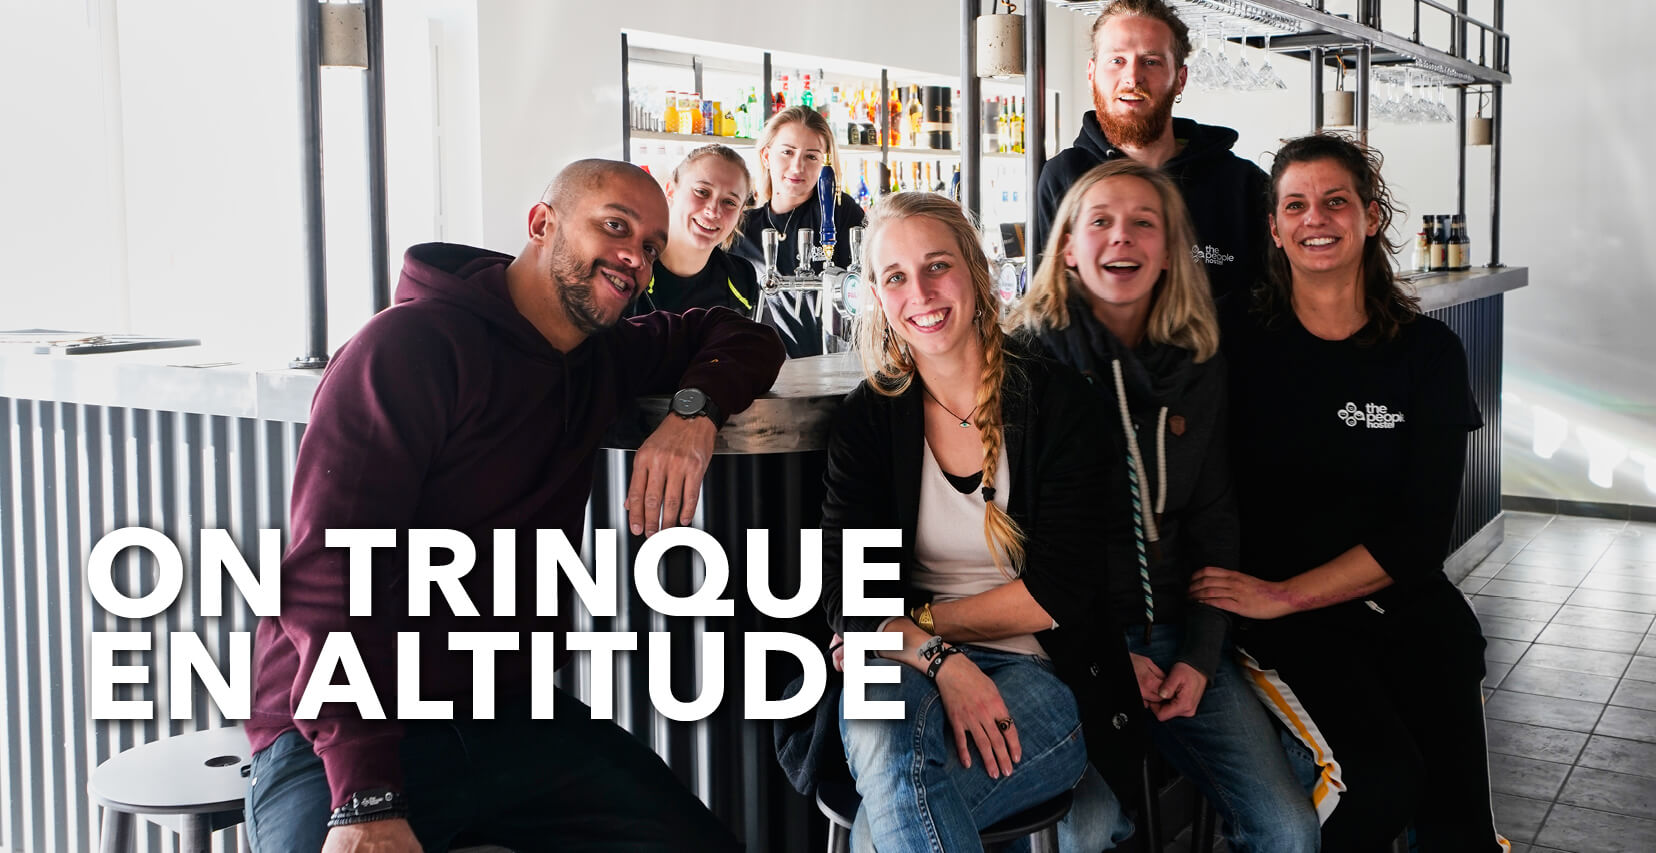 You are currently viewing On trinque en altitude